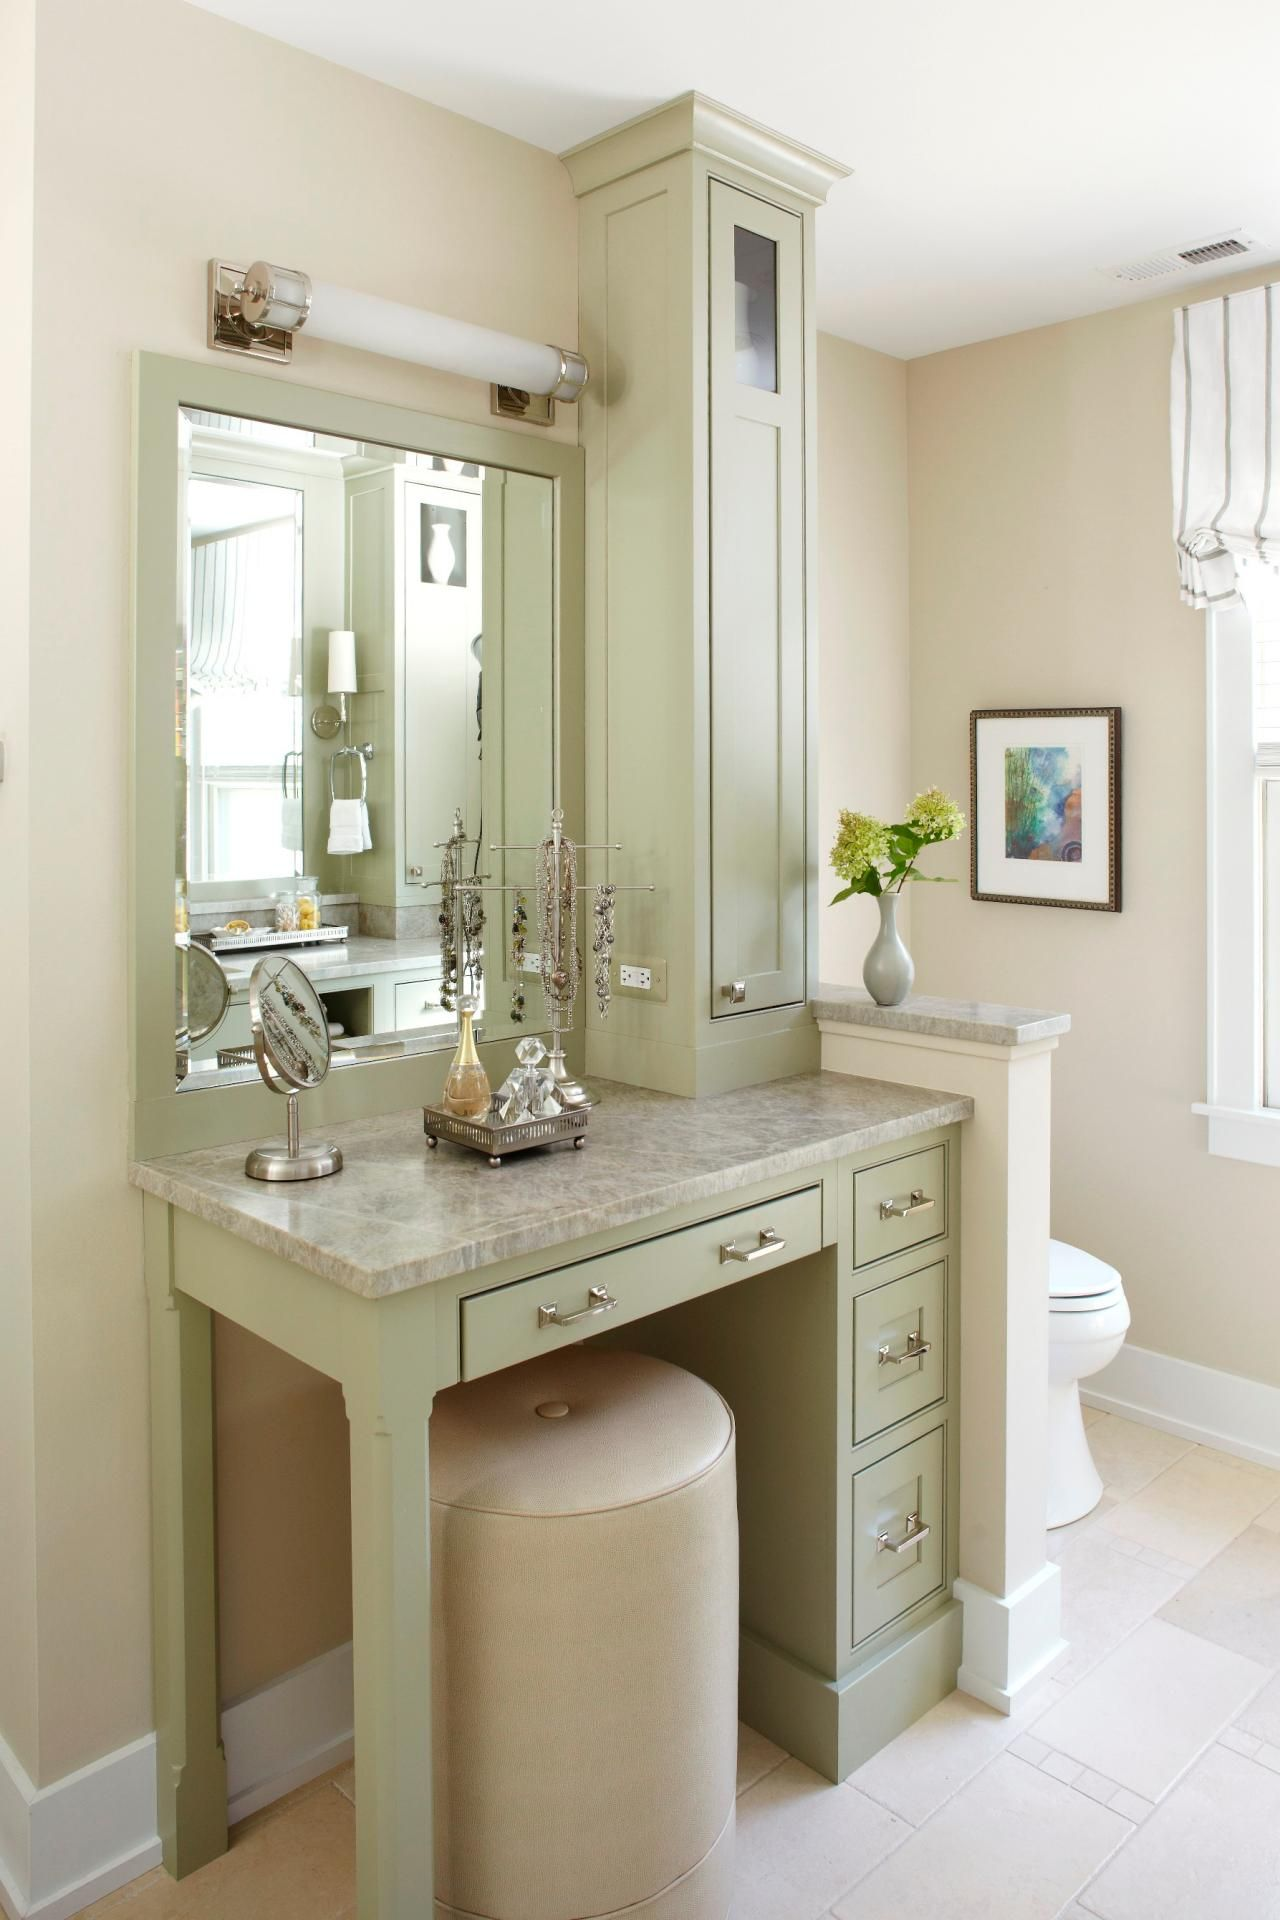 dressing sink bathroom table tops lowes consists of marble double single wht area and in vanity toph makeup top carrara cabinets qty i station keywest white with